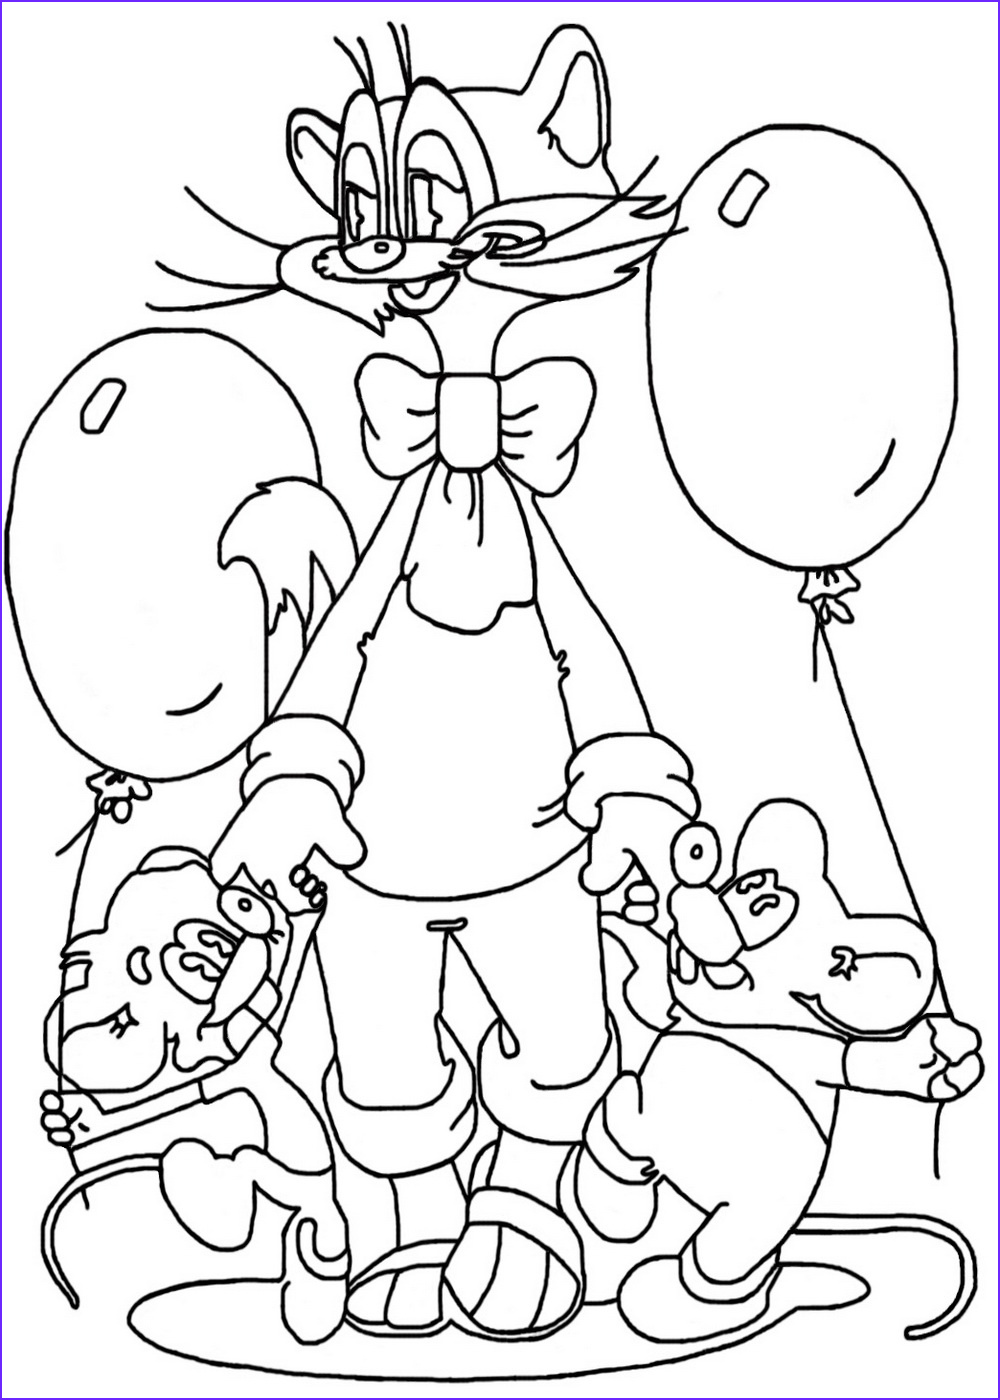 Balloon Coloring Pages Cool Photos Balloon Coloring Pages for Kids to Print for Free